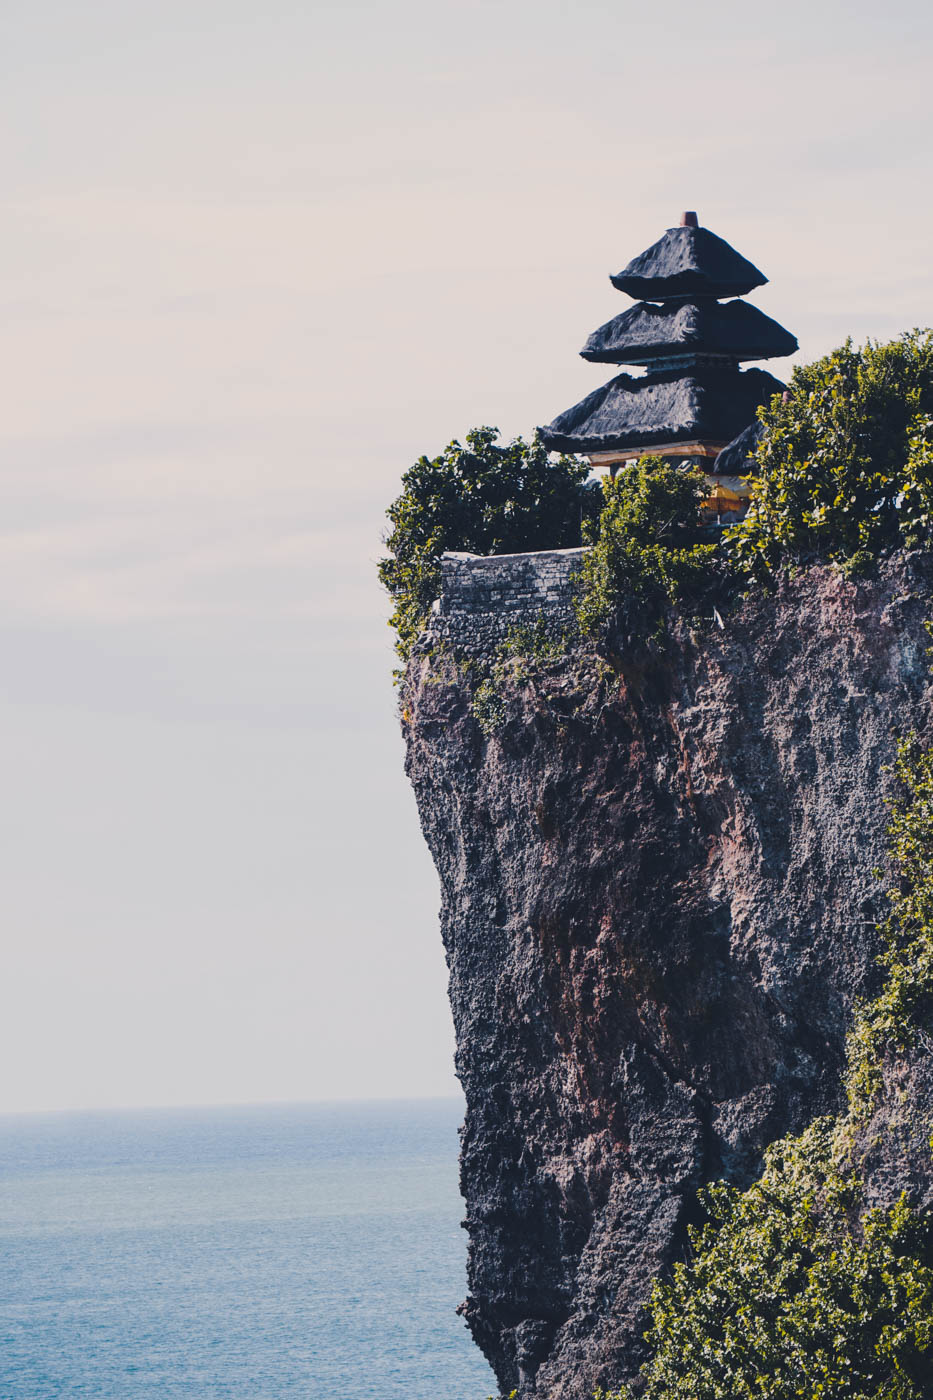 Uluwatu Temple, Bali Itinerary #traveldestinations #bali #beautifulplaces